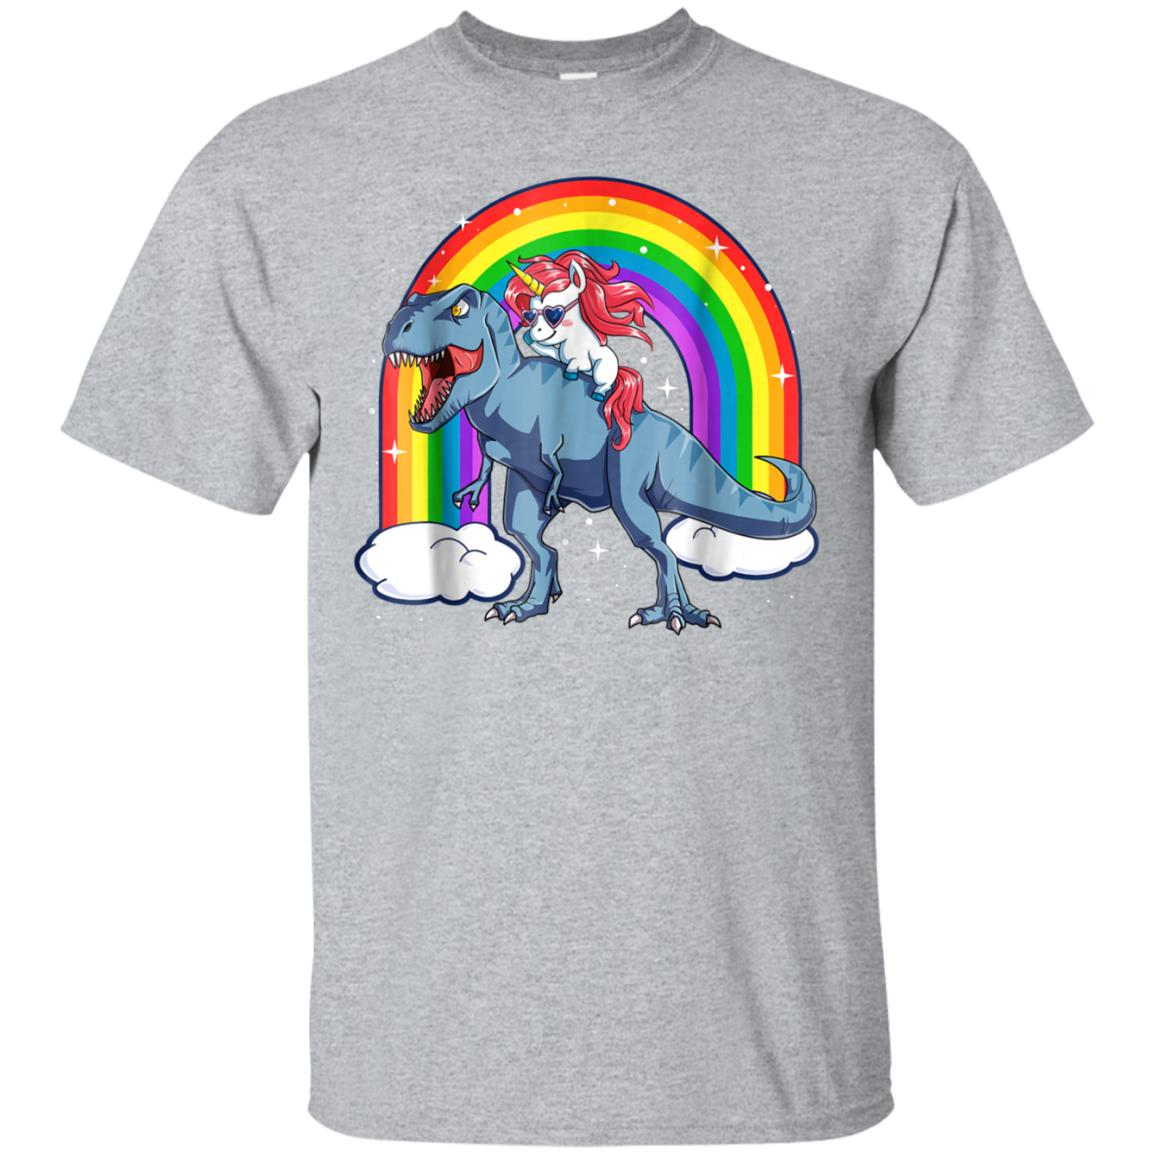 Unicorn Riding T rex Dinosaur T Shirt Unicorns Rainbow Gifts 99promocode